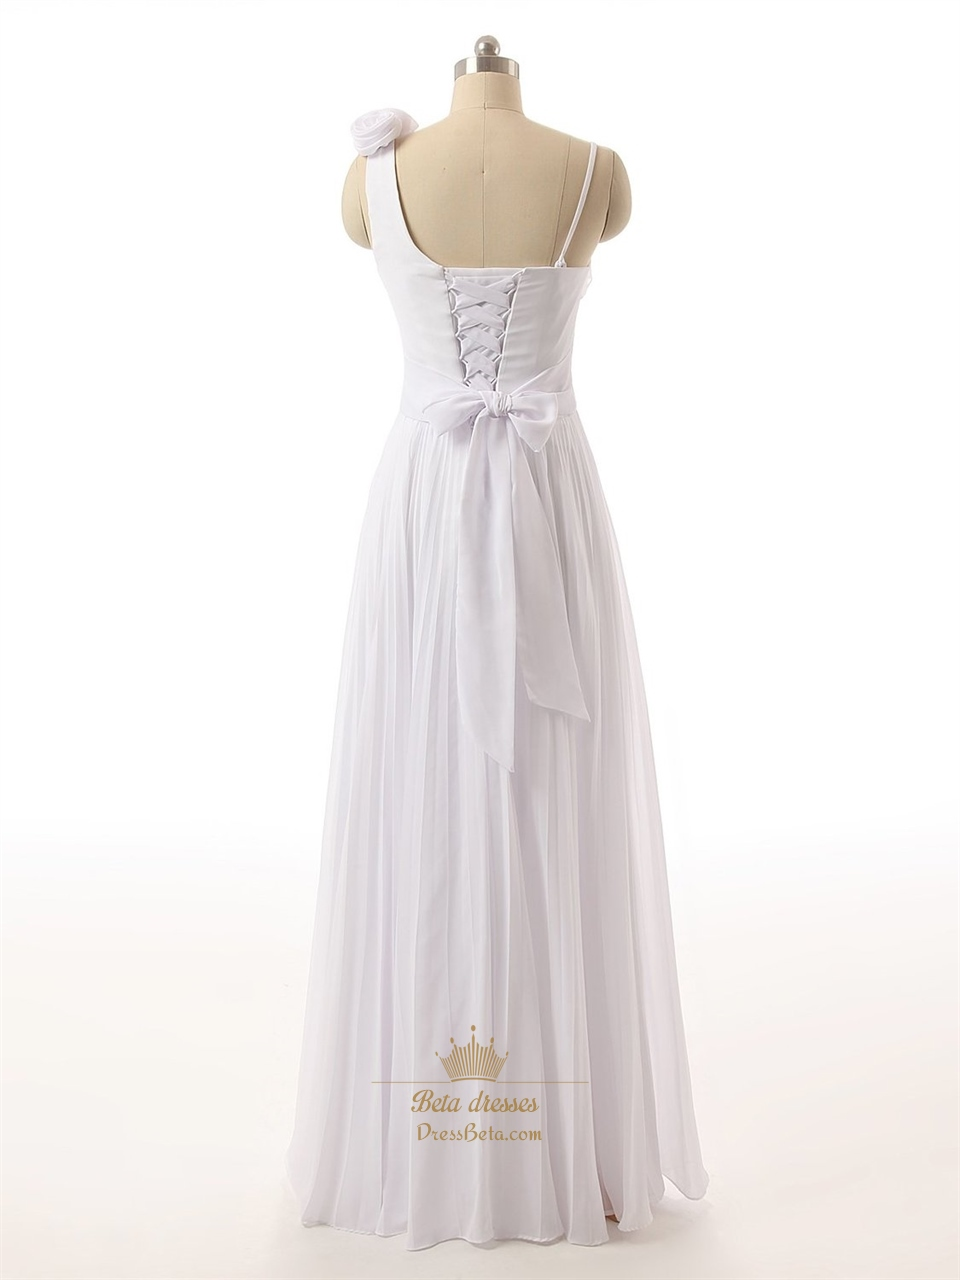 White Roses One Shoulder Ruched Bodice Chiffon Dress With